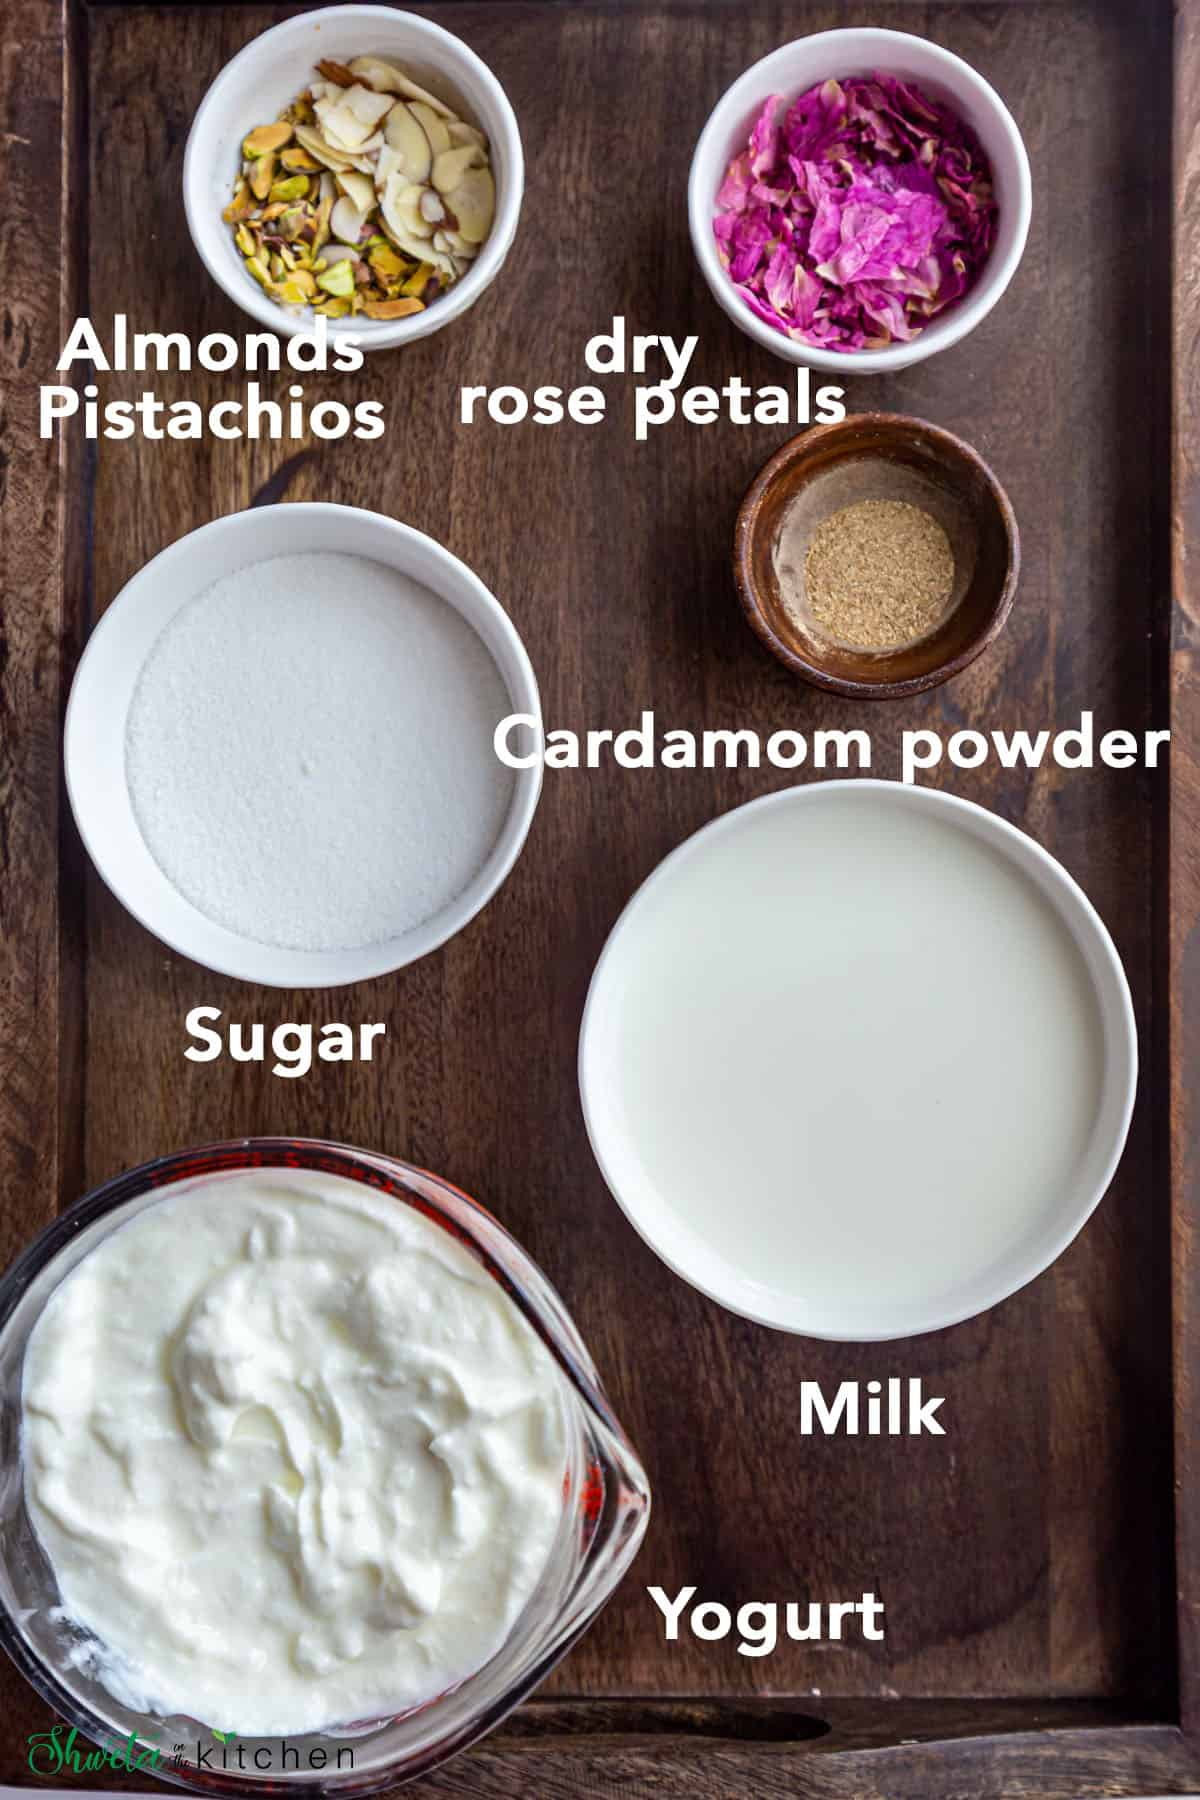 Sweet lassi ingredients in bowls on wooden tray